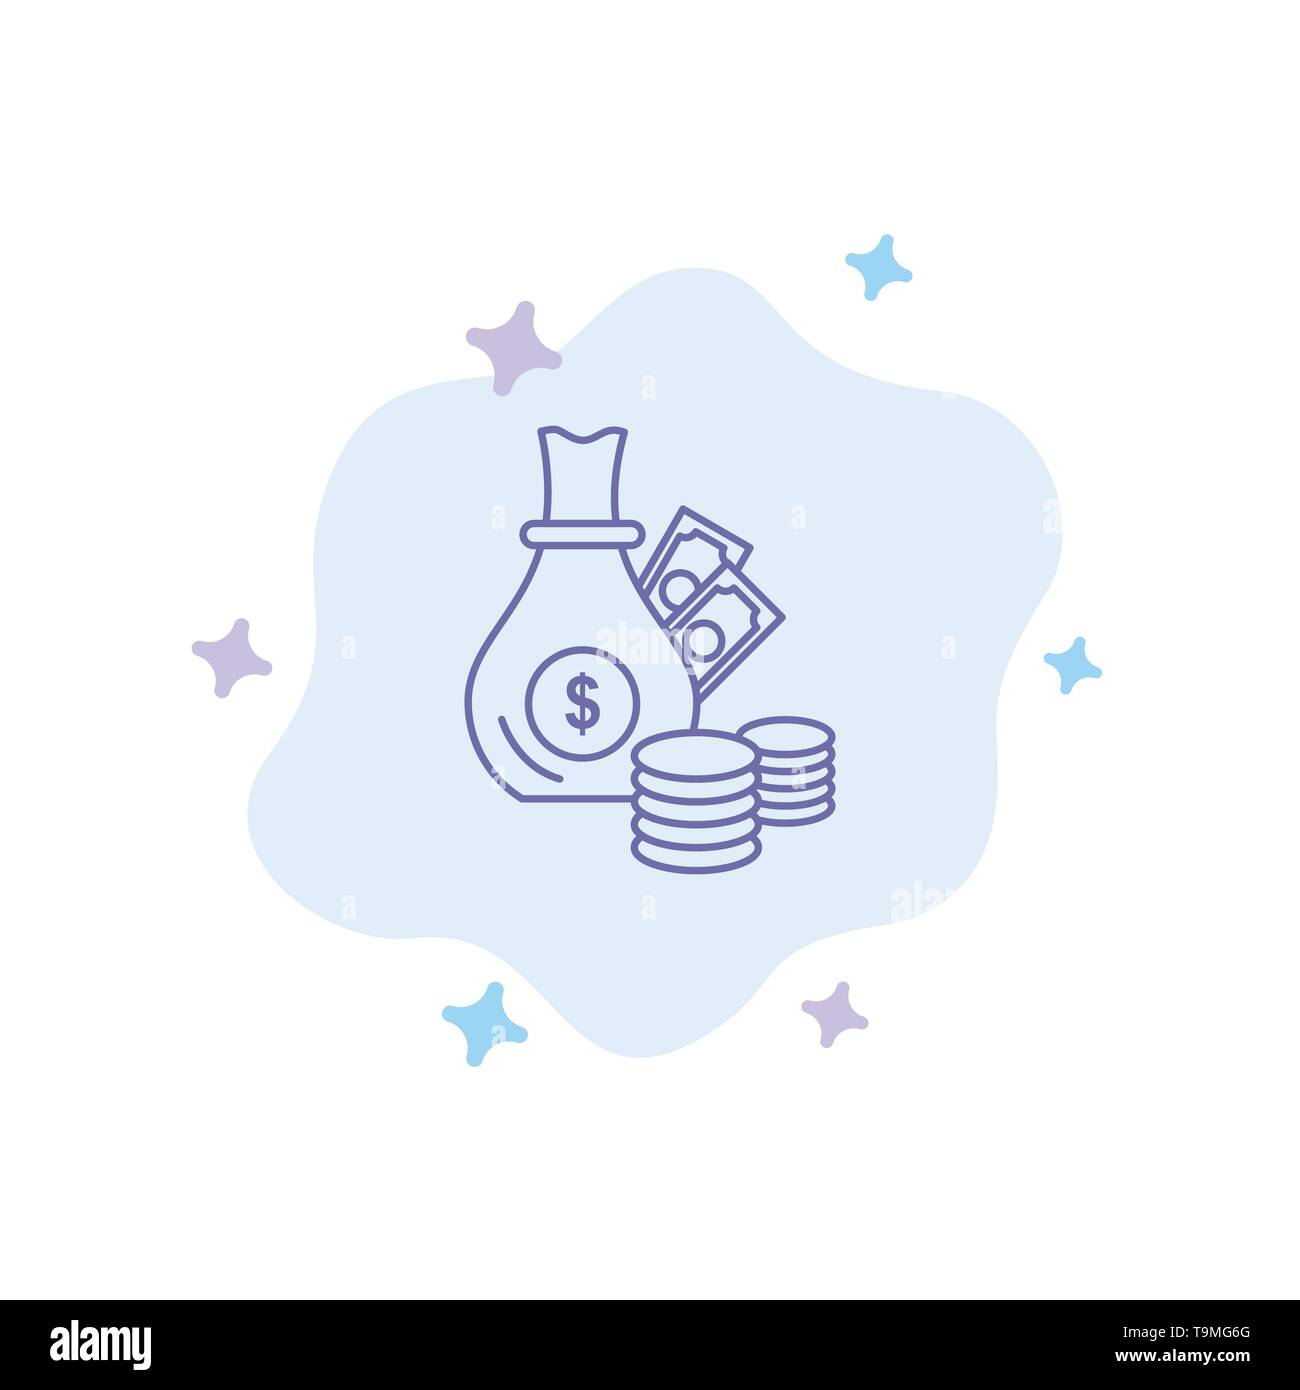 Money, Bank, Business, Coins, Gold Blue Icon on Abstract Cloud Background - Stock Image